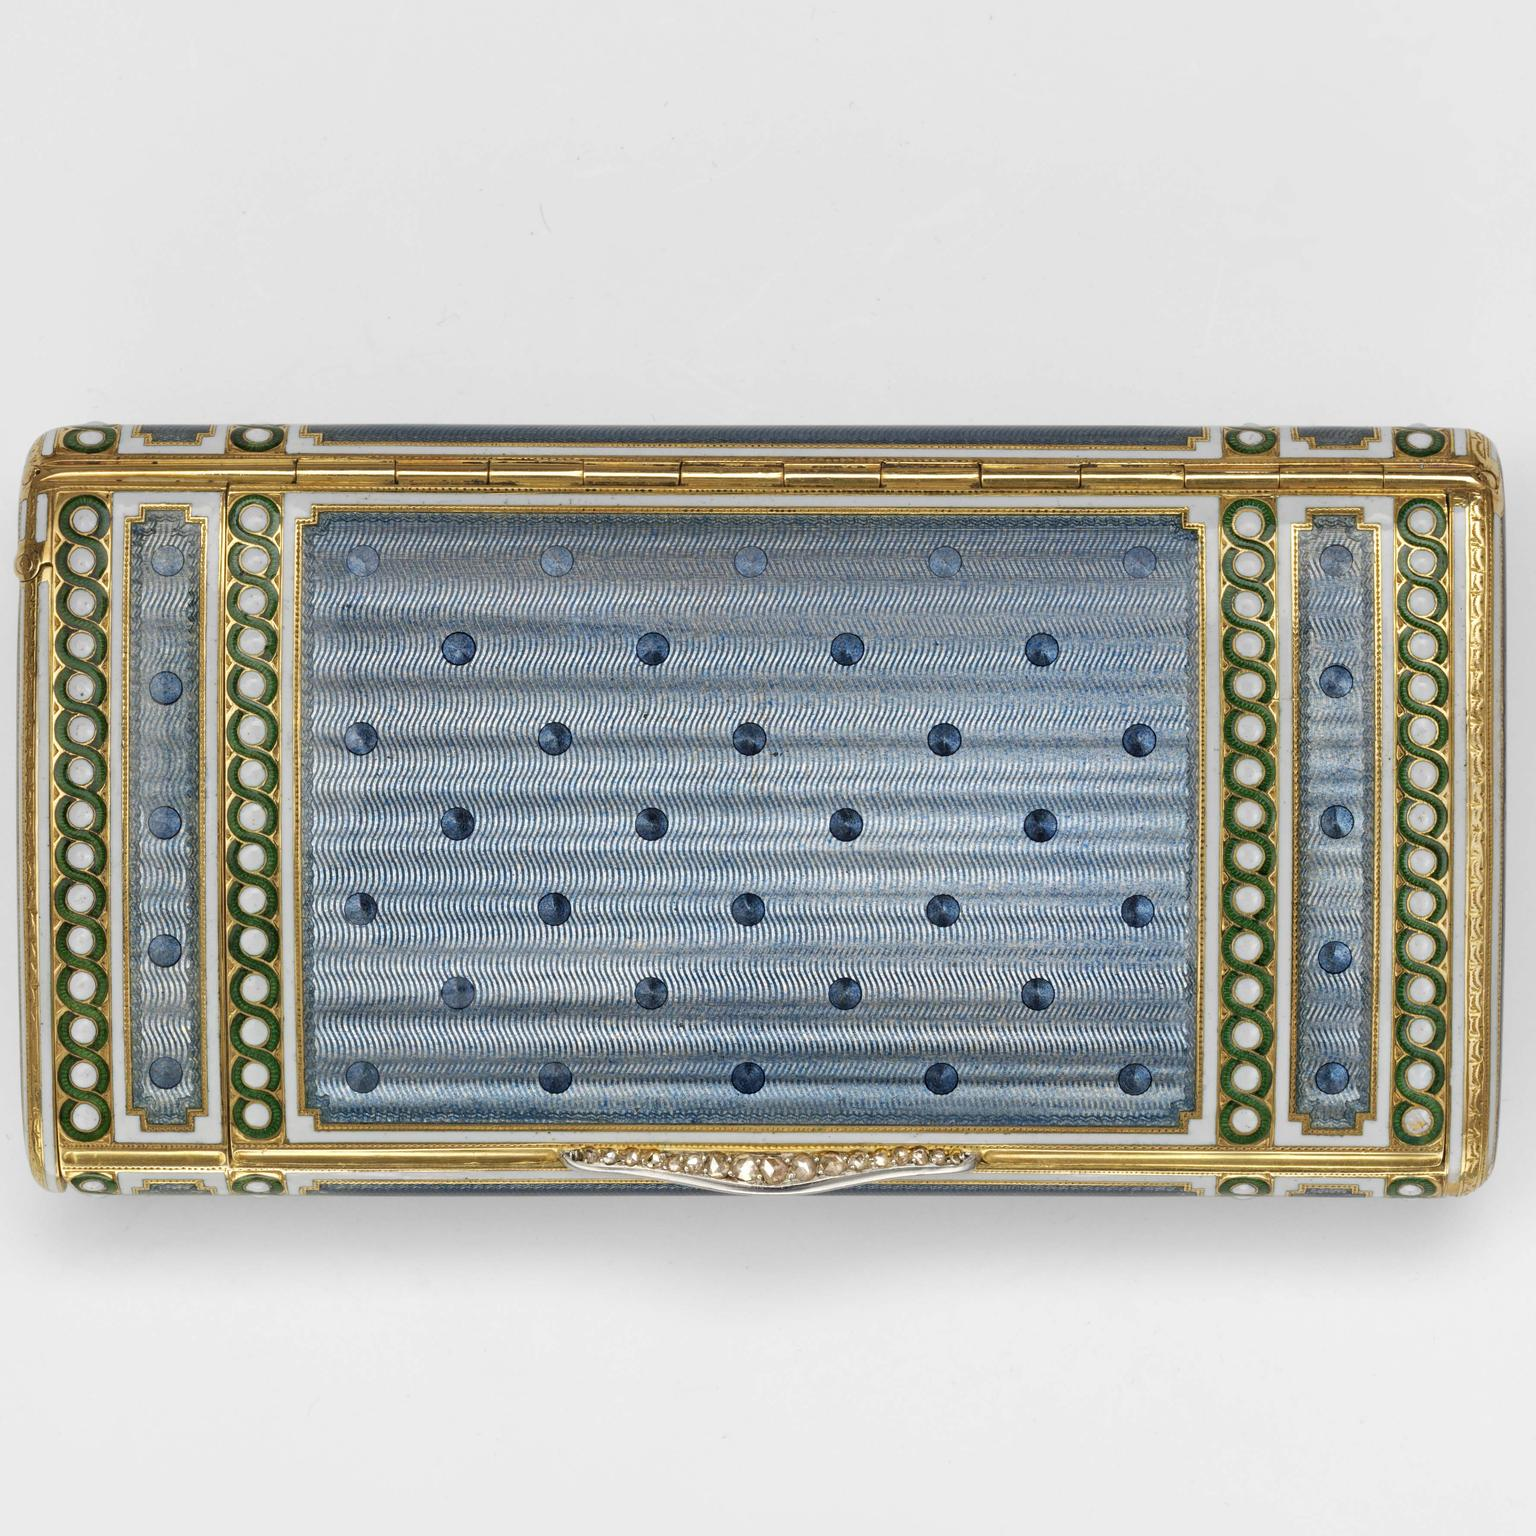 1907 Cartier cigarette case